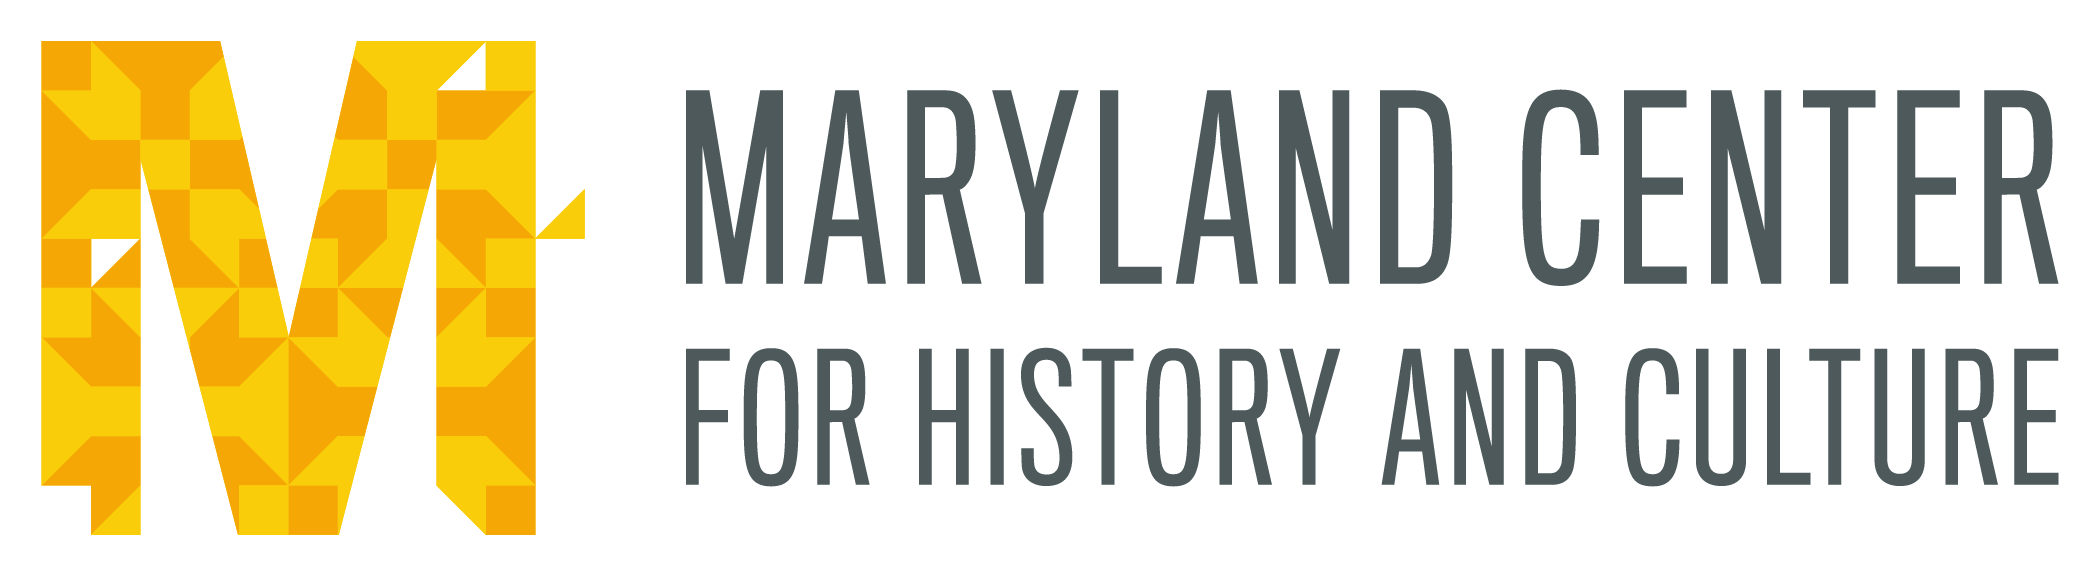 Maryland Center for History and Culture